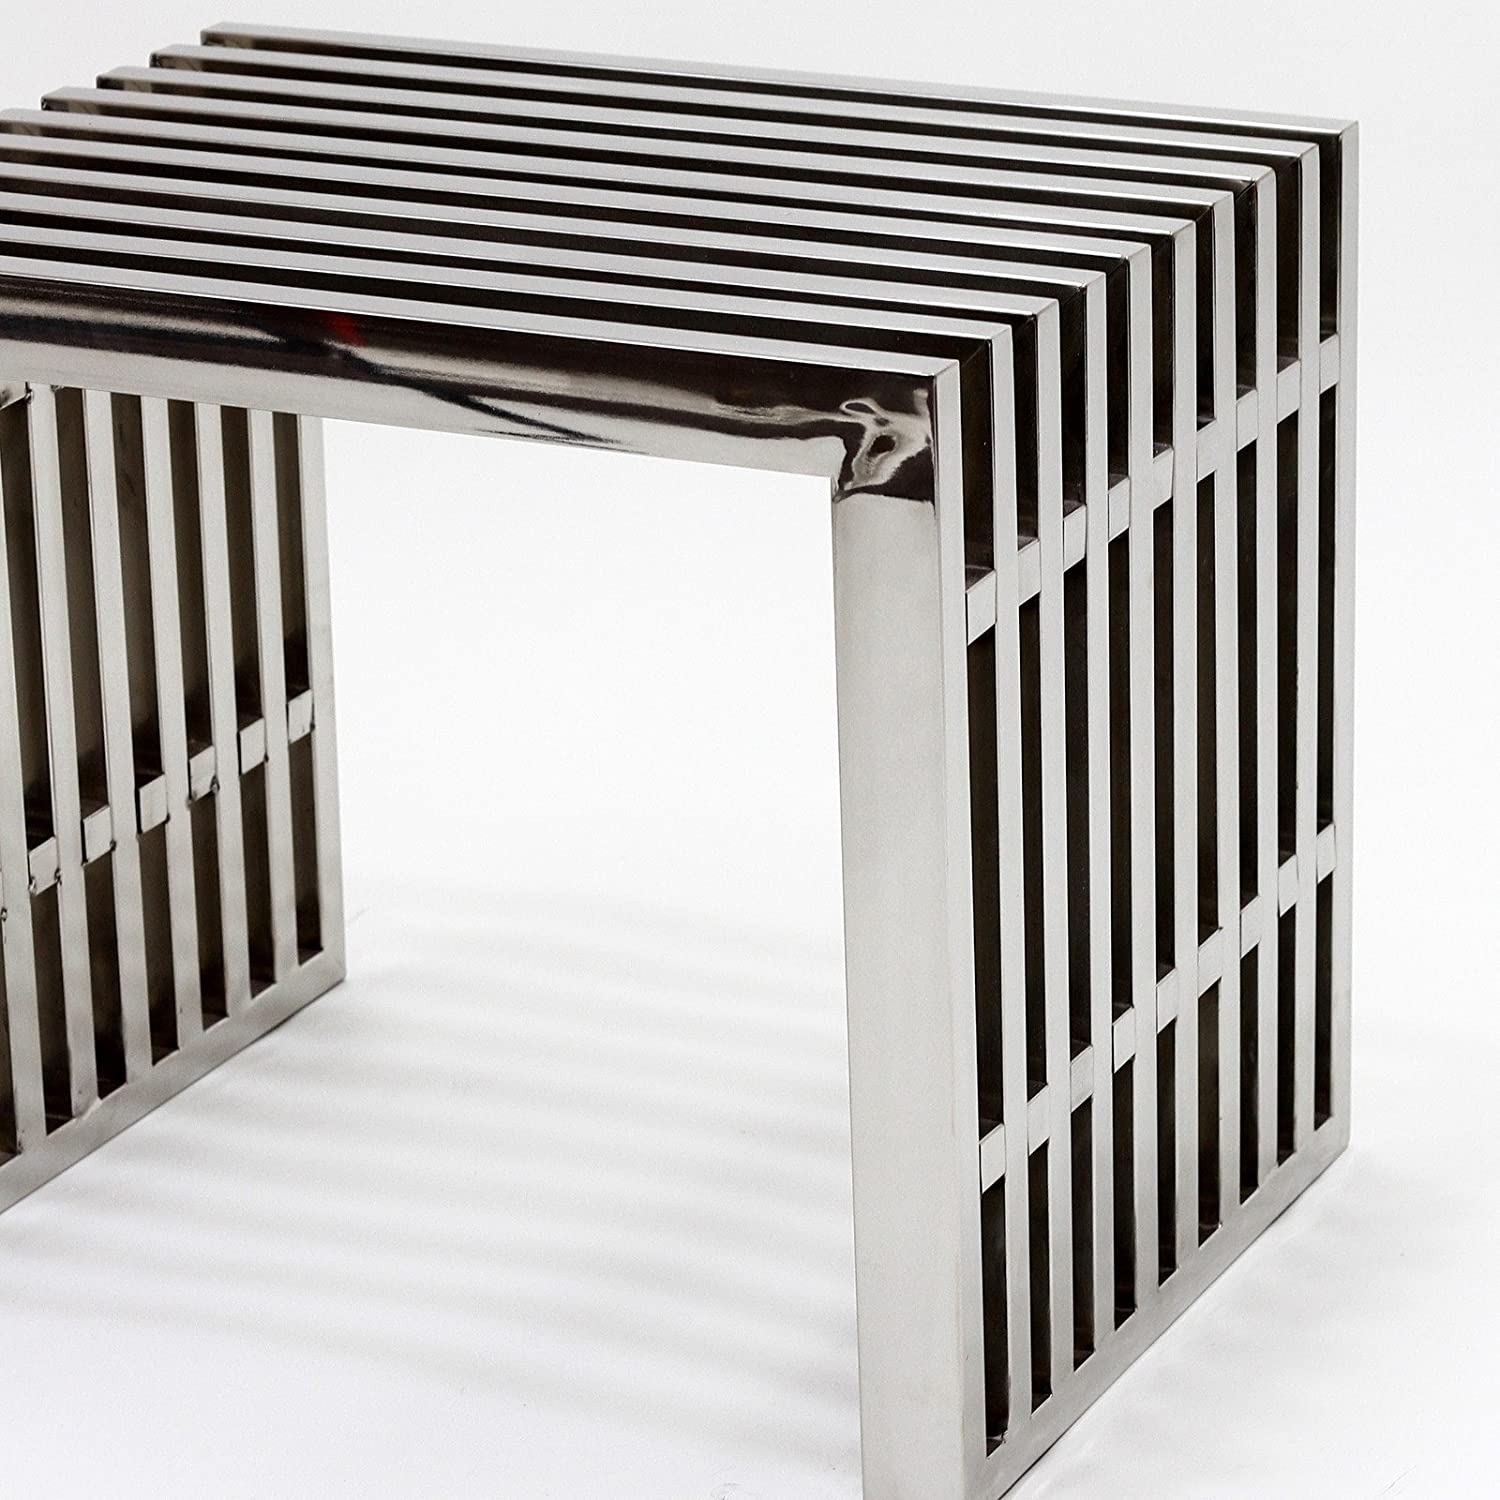 Bench In Silver Small Stainless Steel Finish - image-2